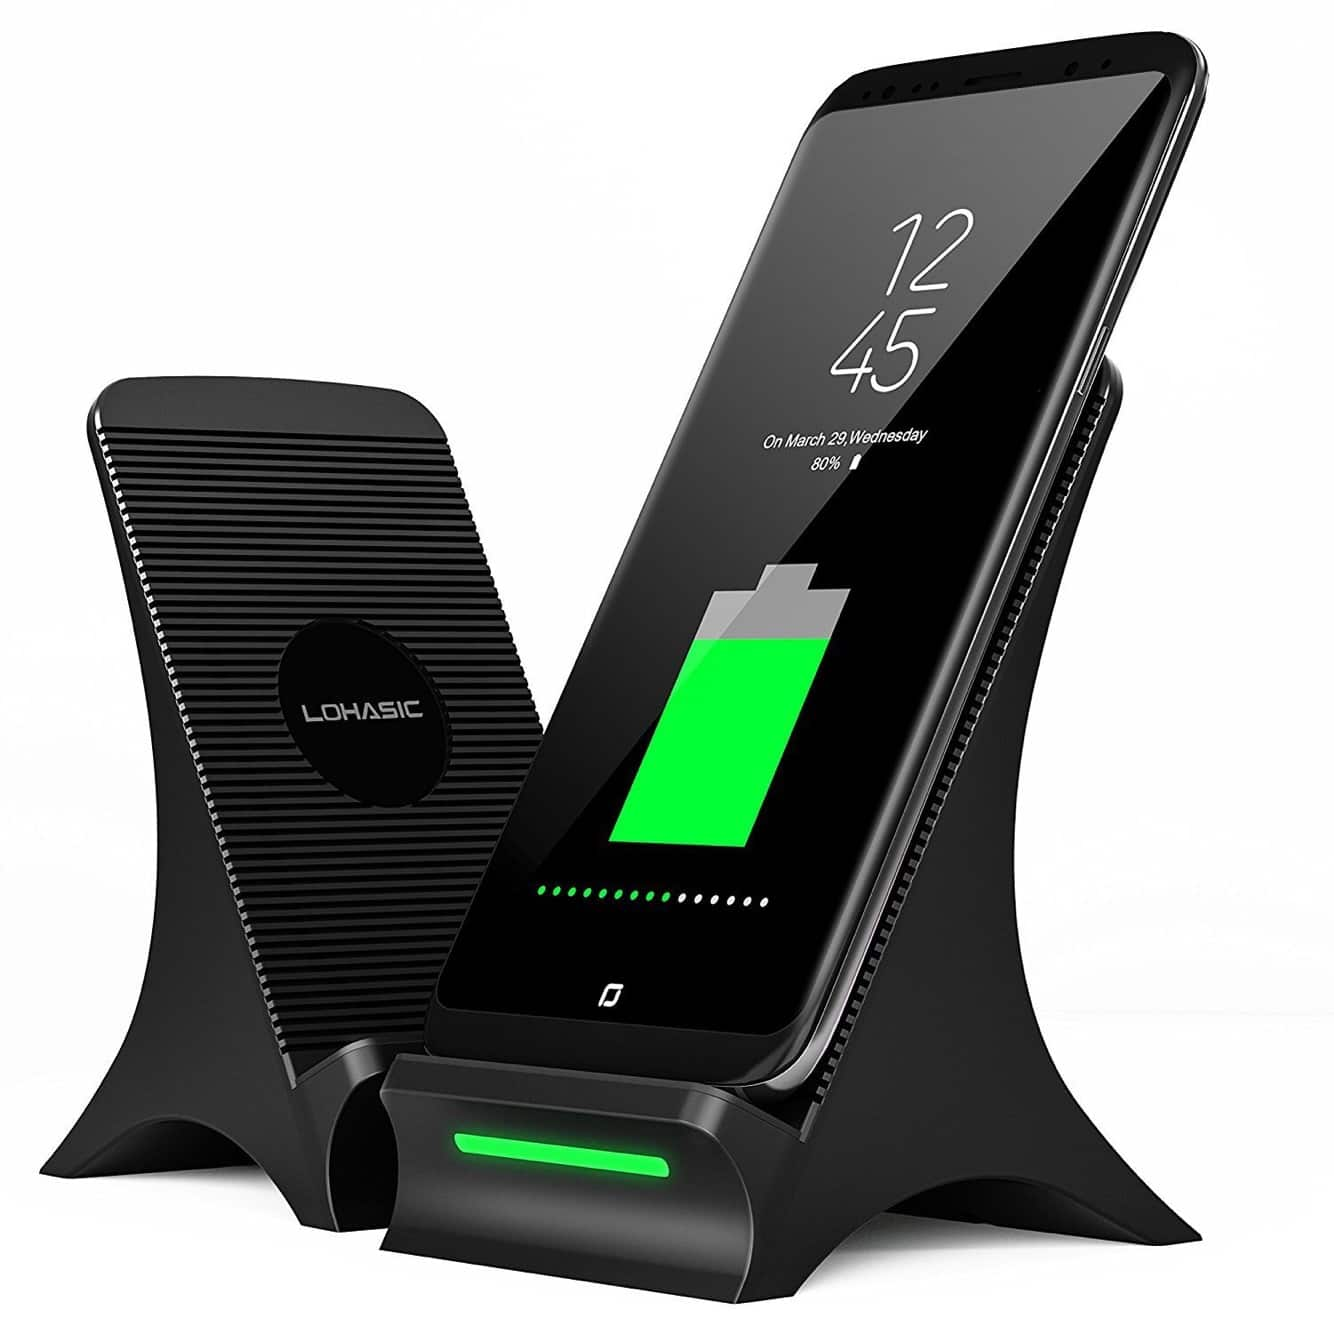 Wireless Charger with Cooling Fan Stand Pad for iPhone Samsung and All Qi Enabled Devices from $16.71